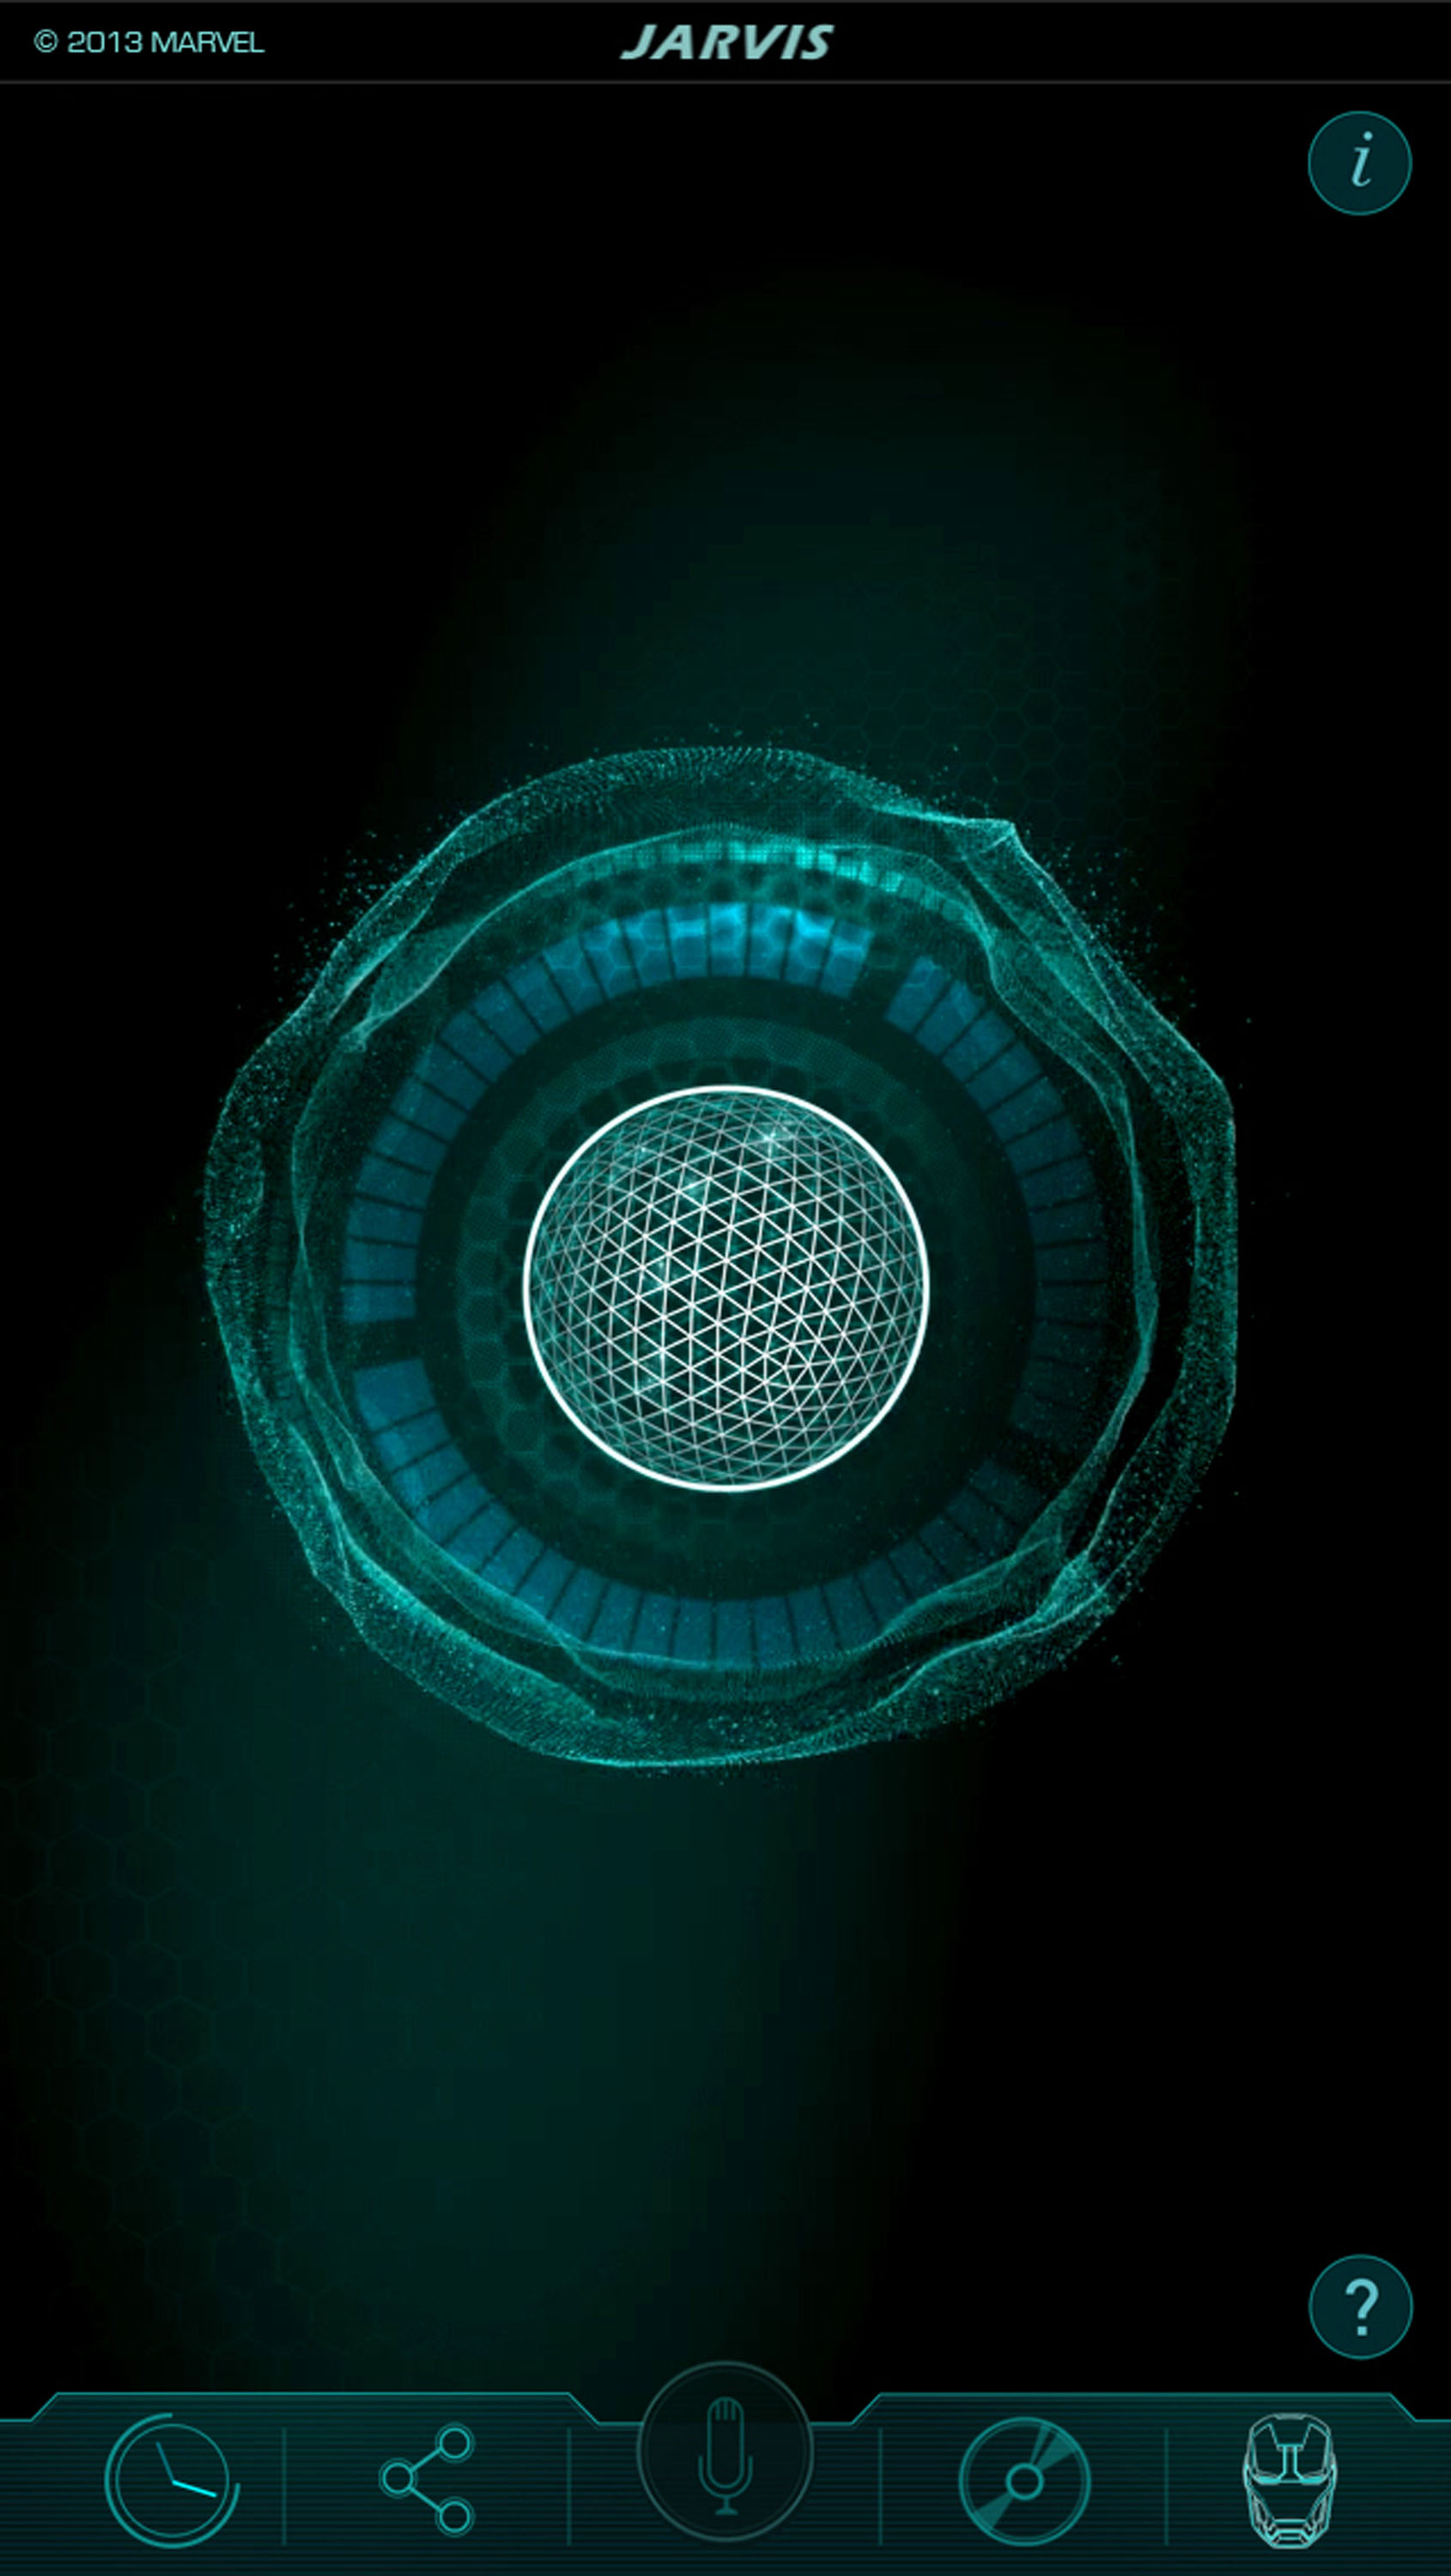 Jarvis iPhone Wallpaper - WallpaperSafari